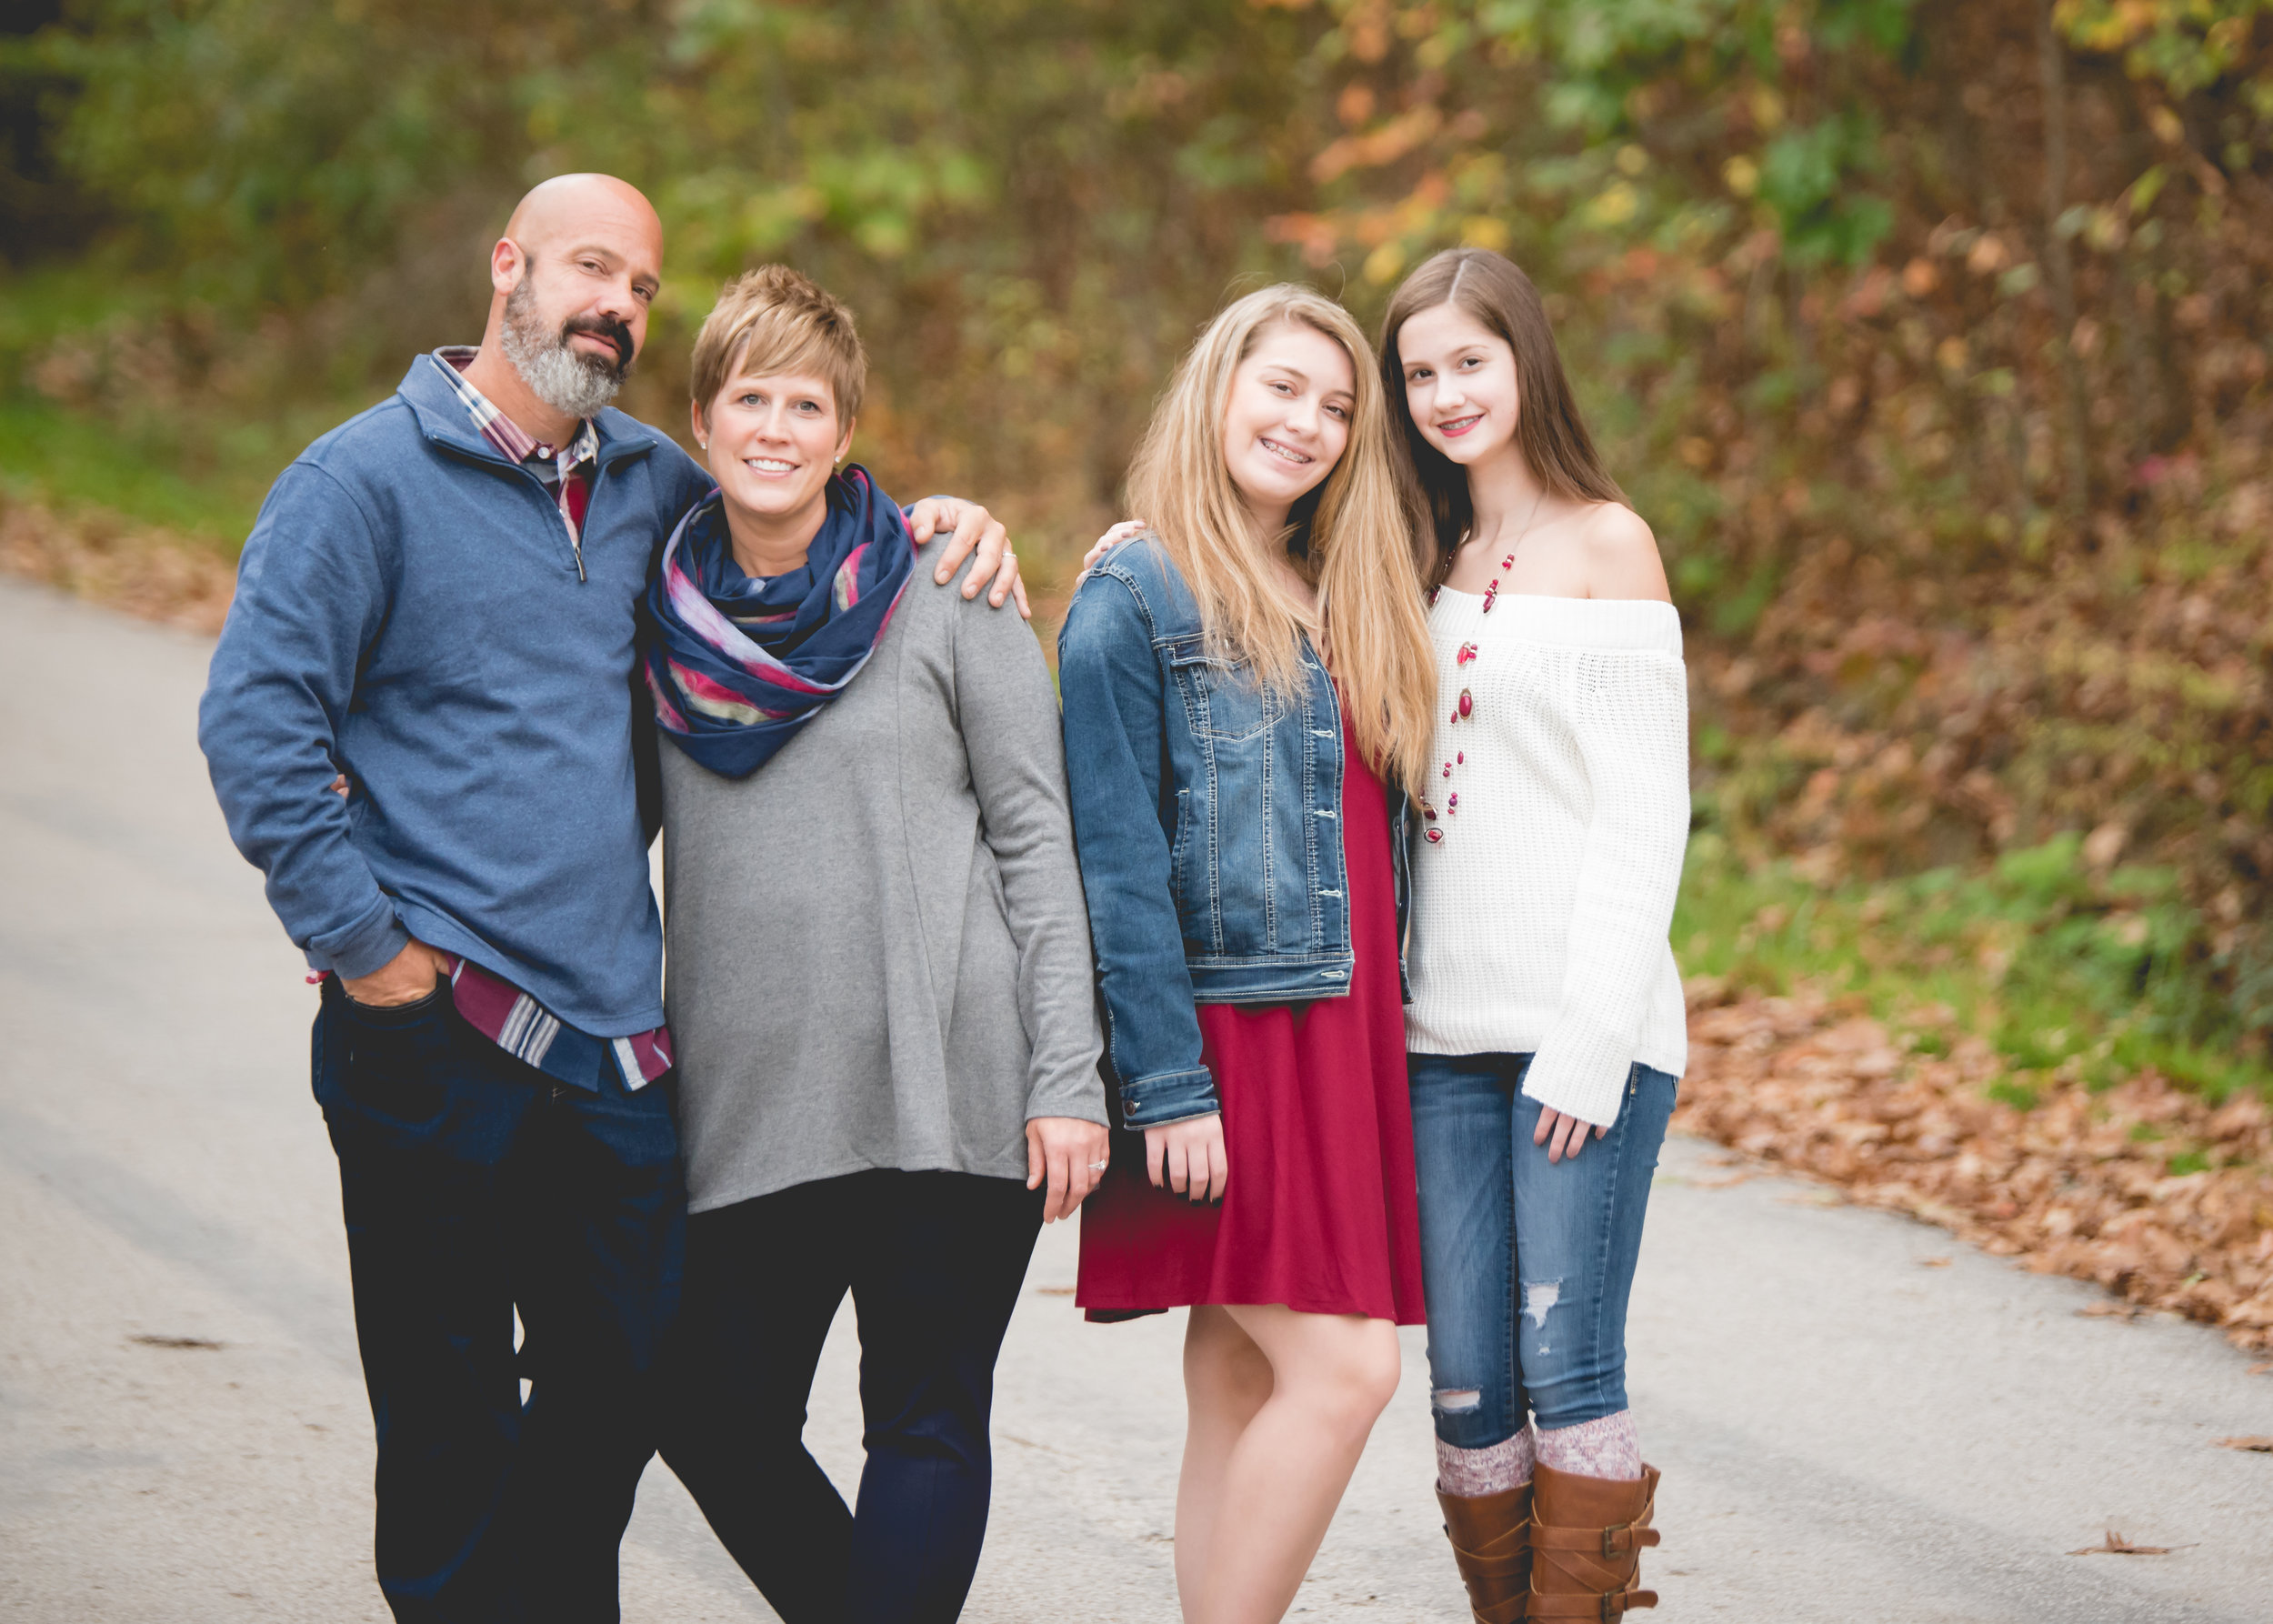 Fall Family Photography, Fall Photos, Cleveland Family Photography, Cleveland Family Photographer